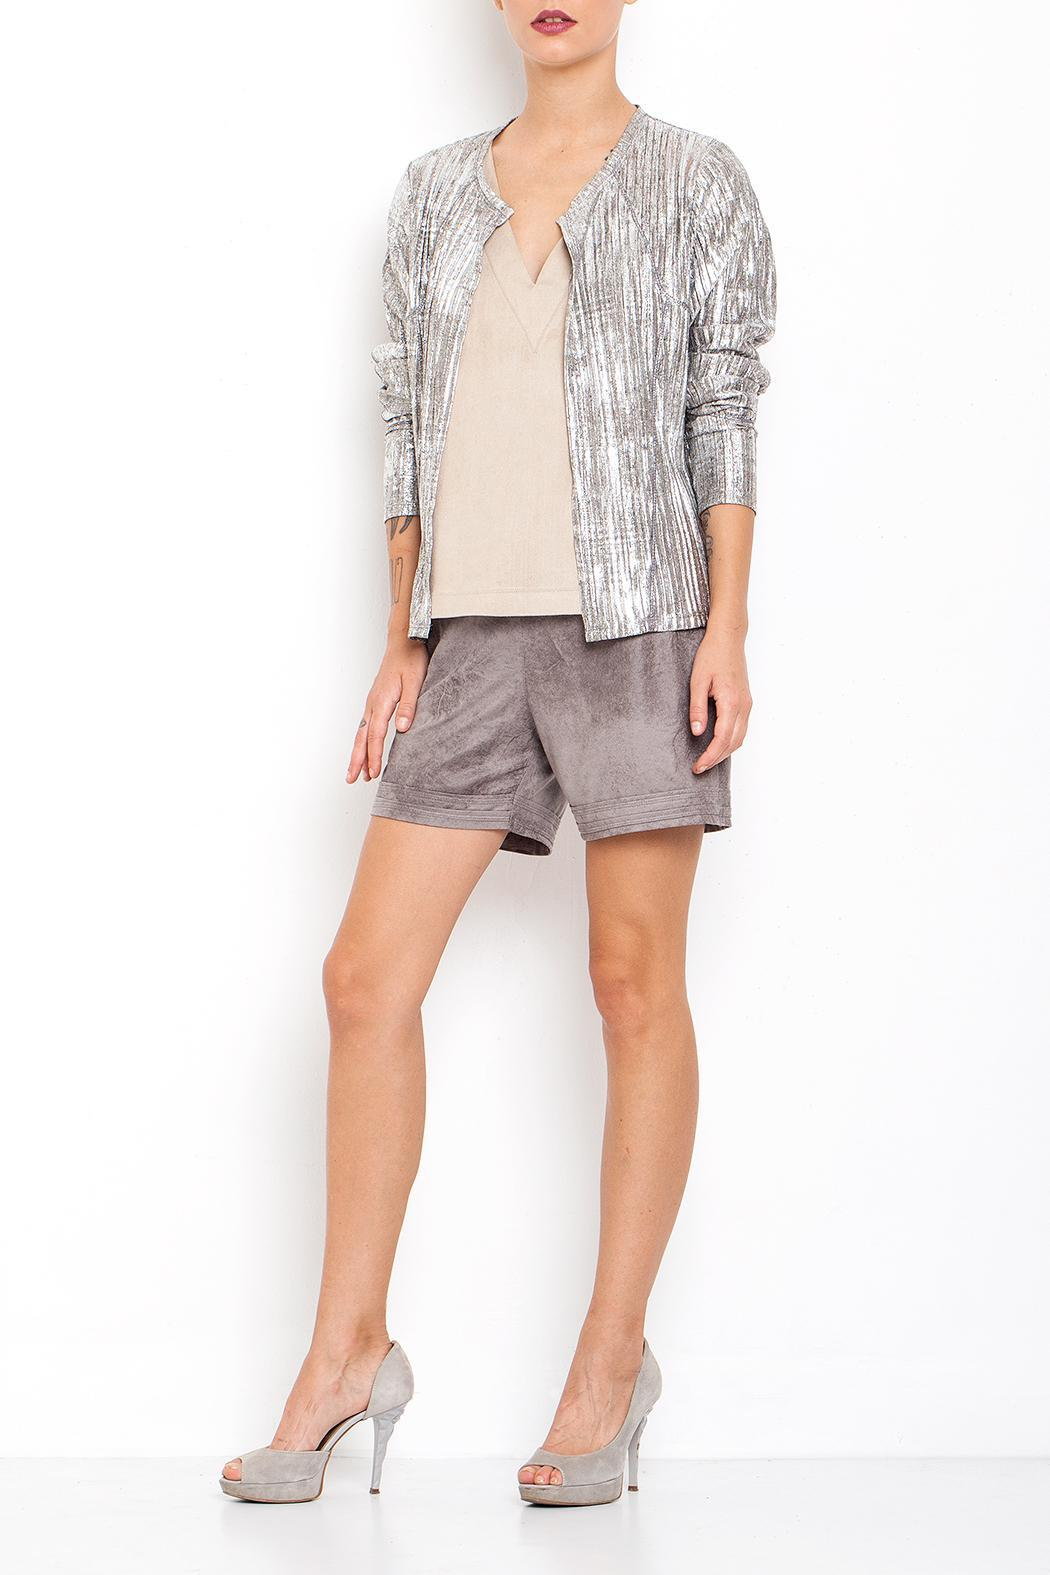 Dagani Studio Pleated Silver Top - Main Image